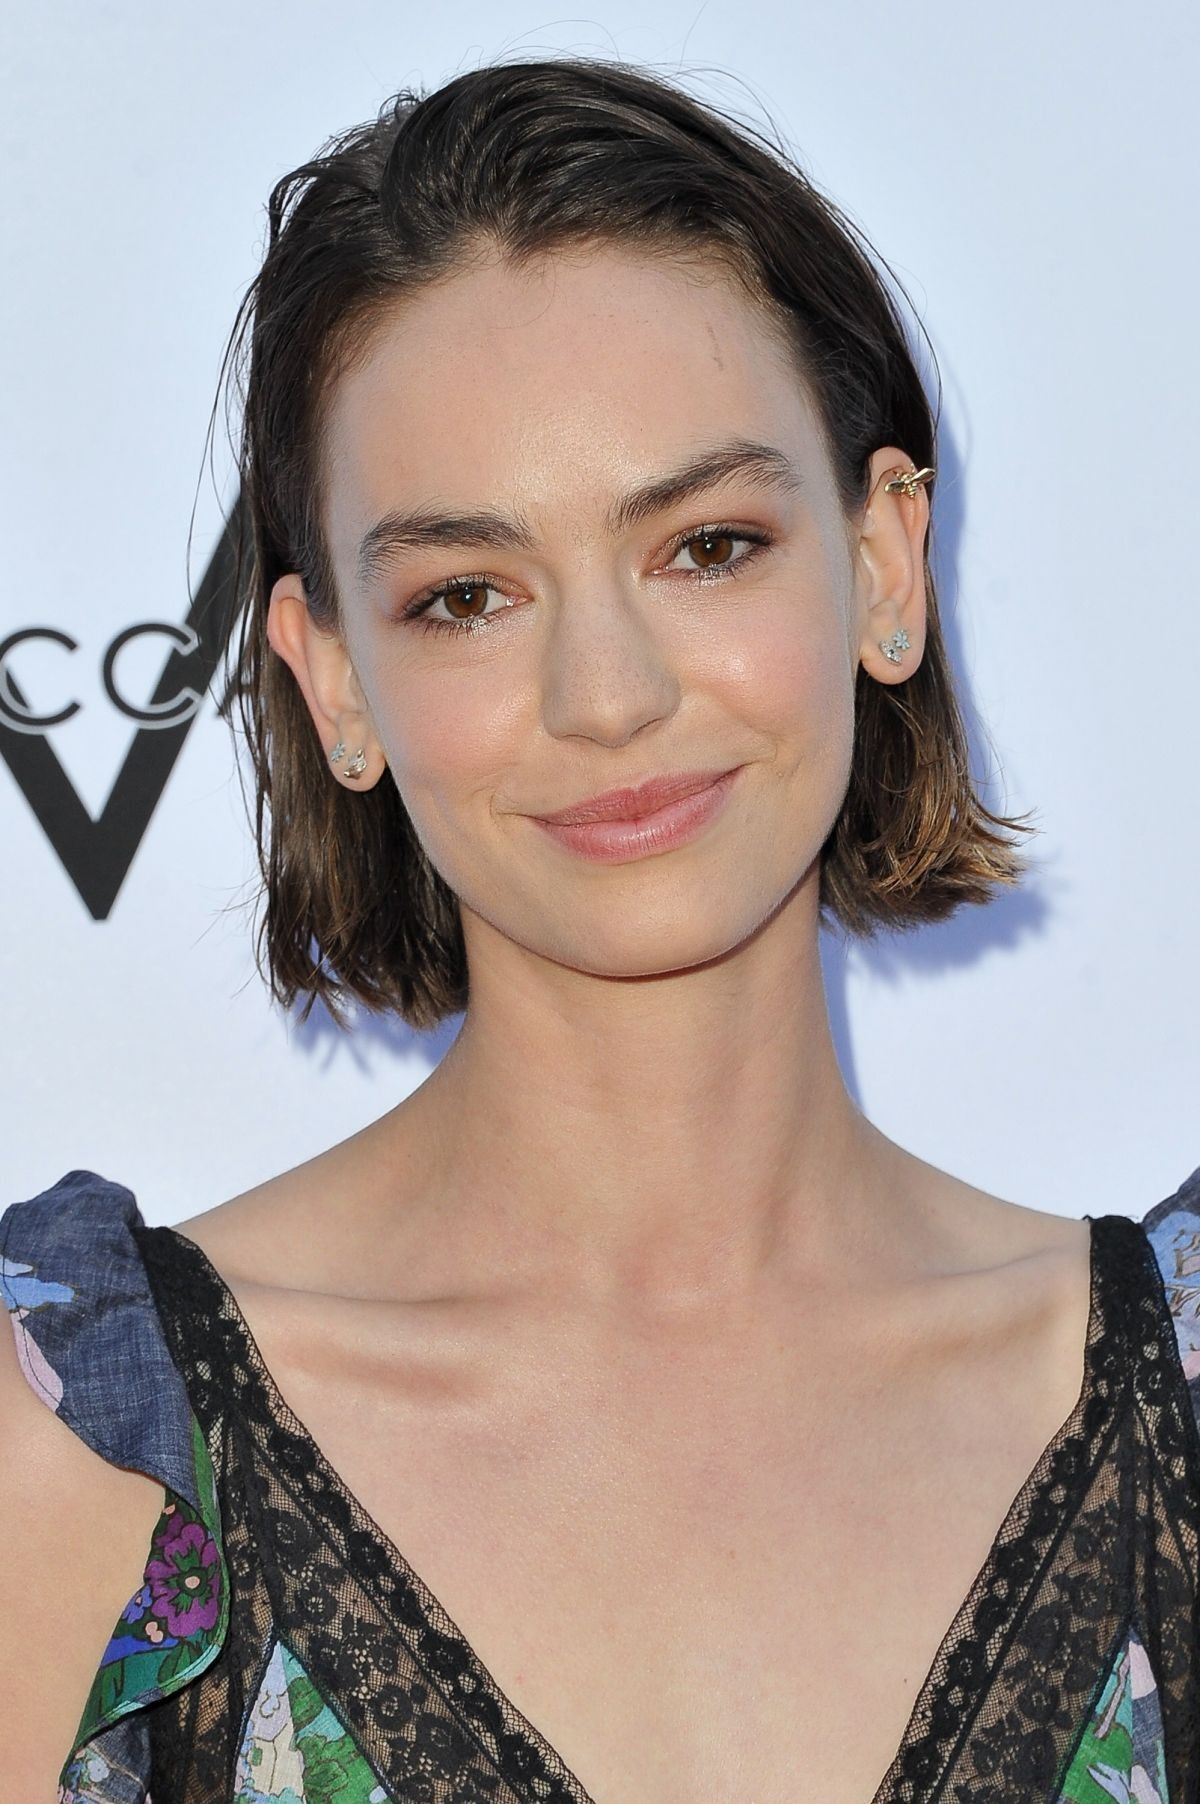 Selfie Brigette Lundy-Paine nude photos 2019